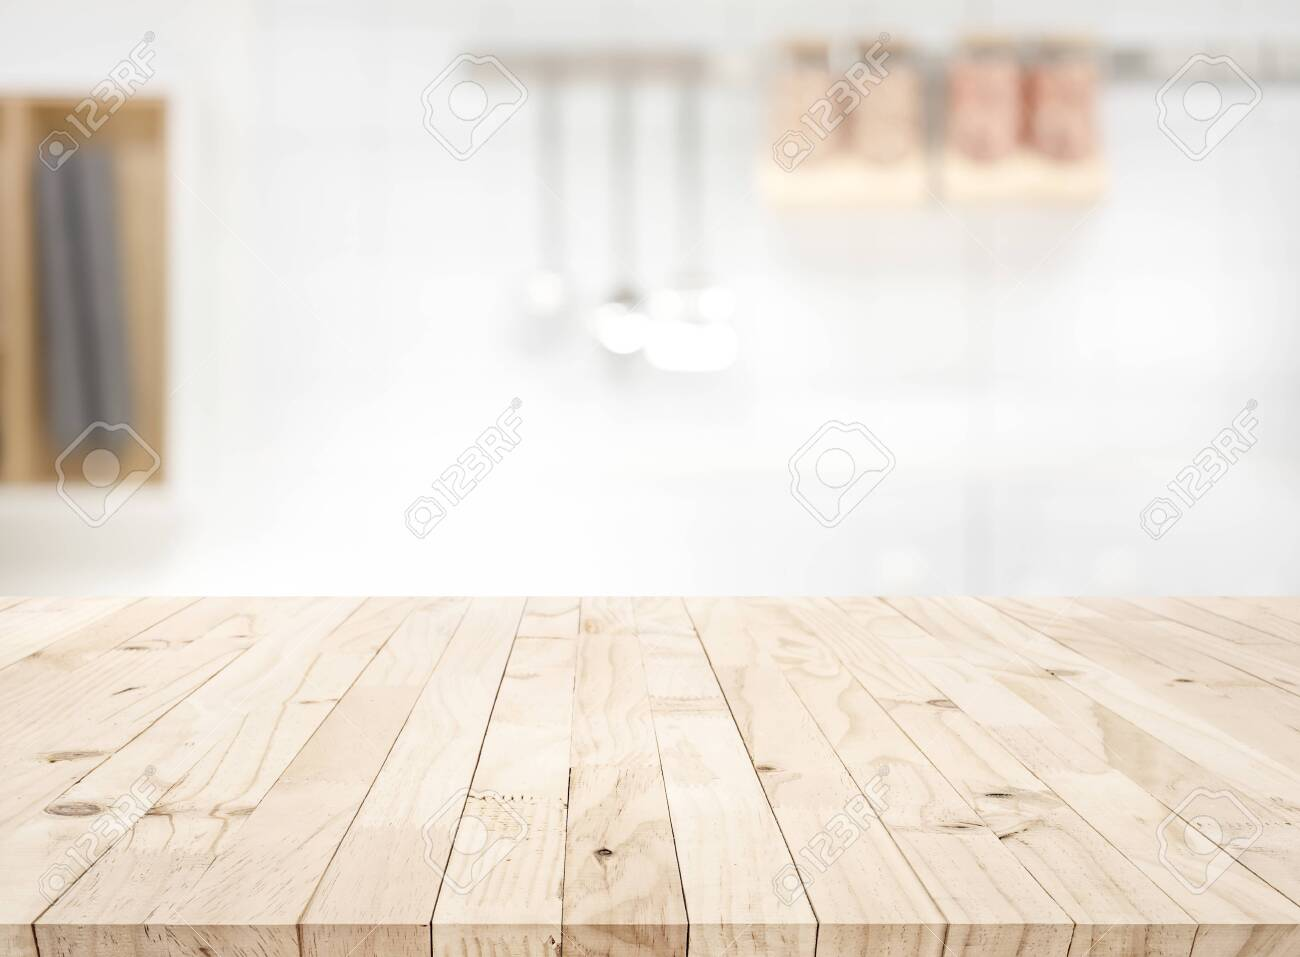 Wood table top on blur kitchen counter roombackground.For montage..